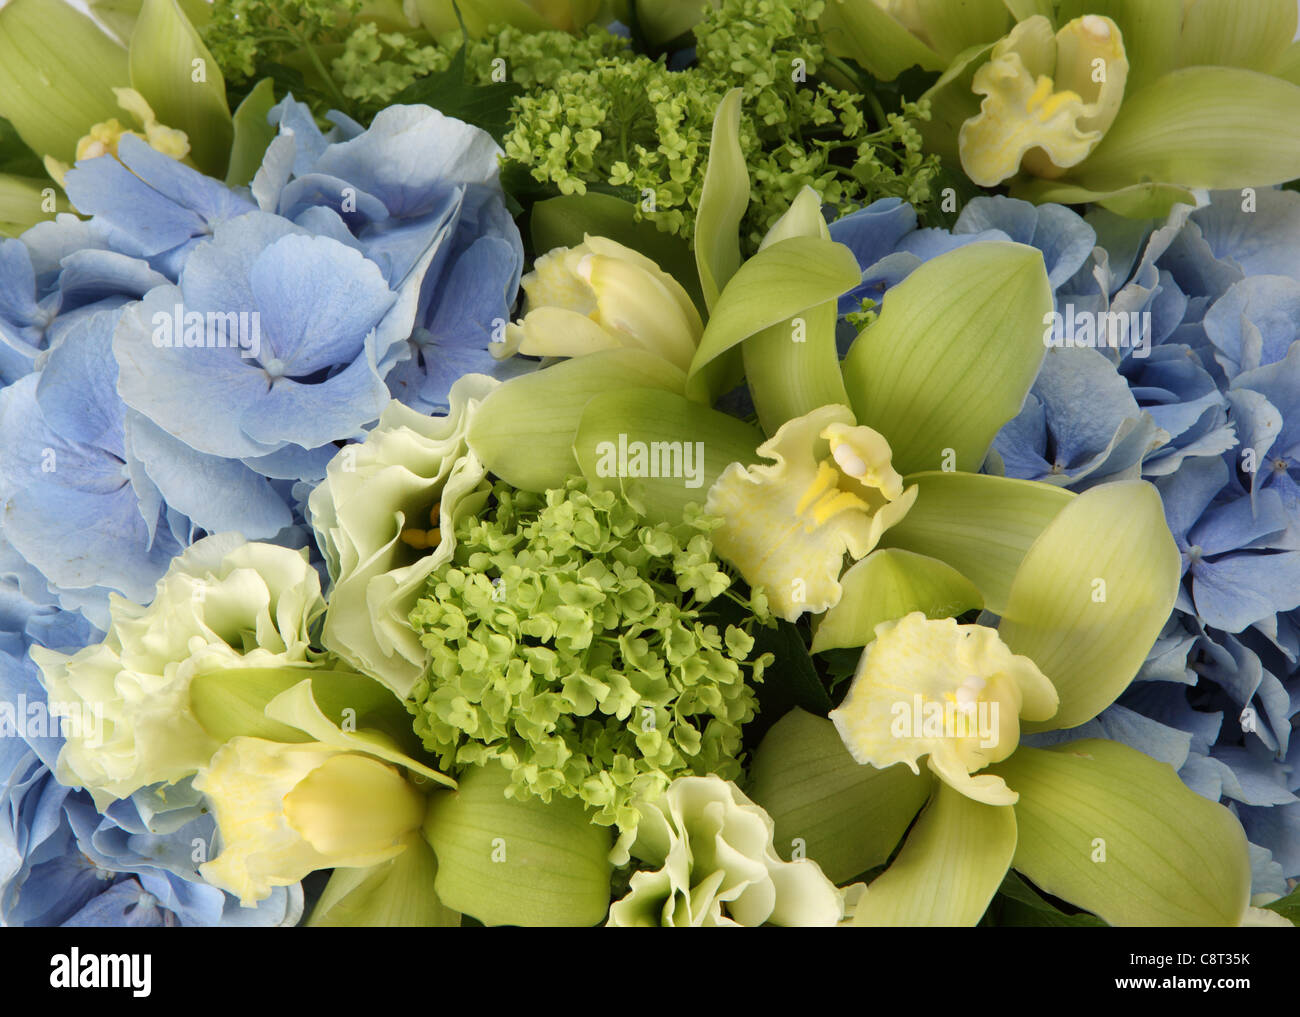 A close-up of a colorful bouquet of flowers. A blue hydrangea, small ...